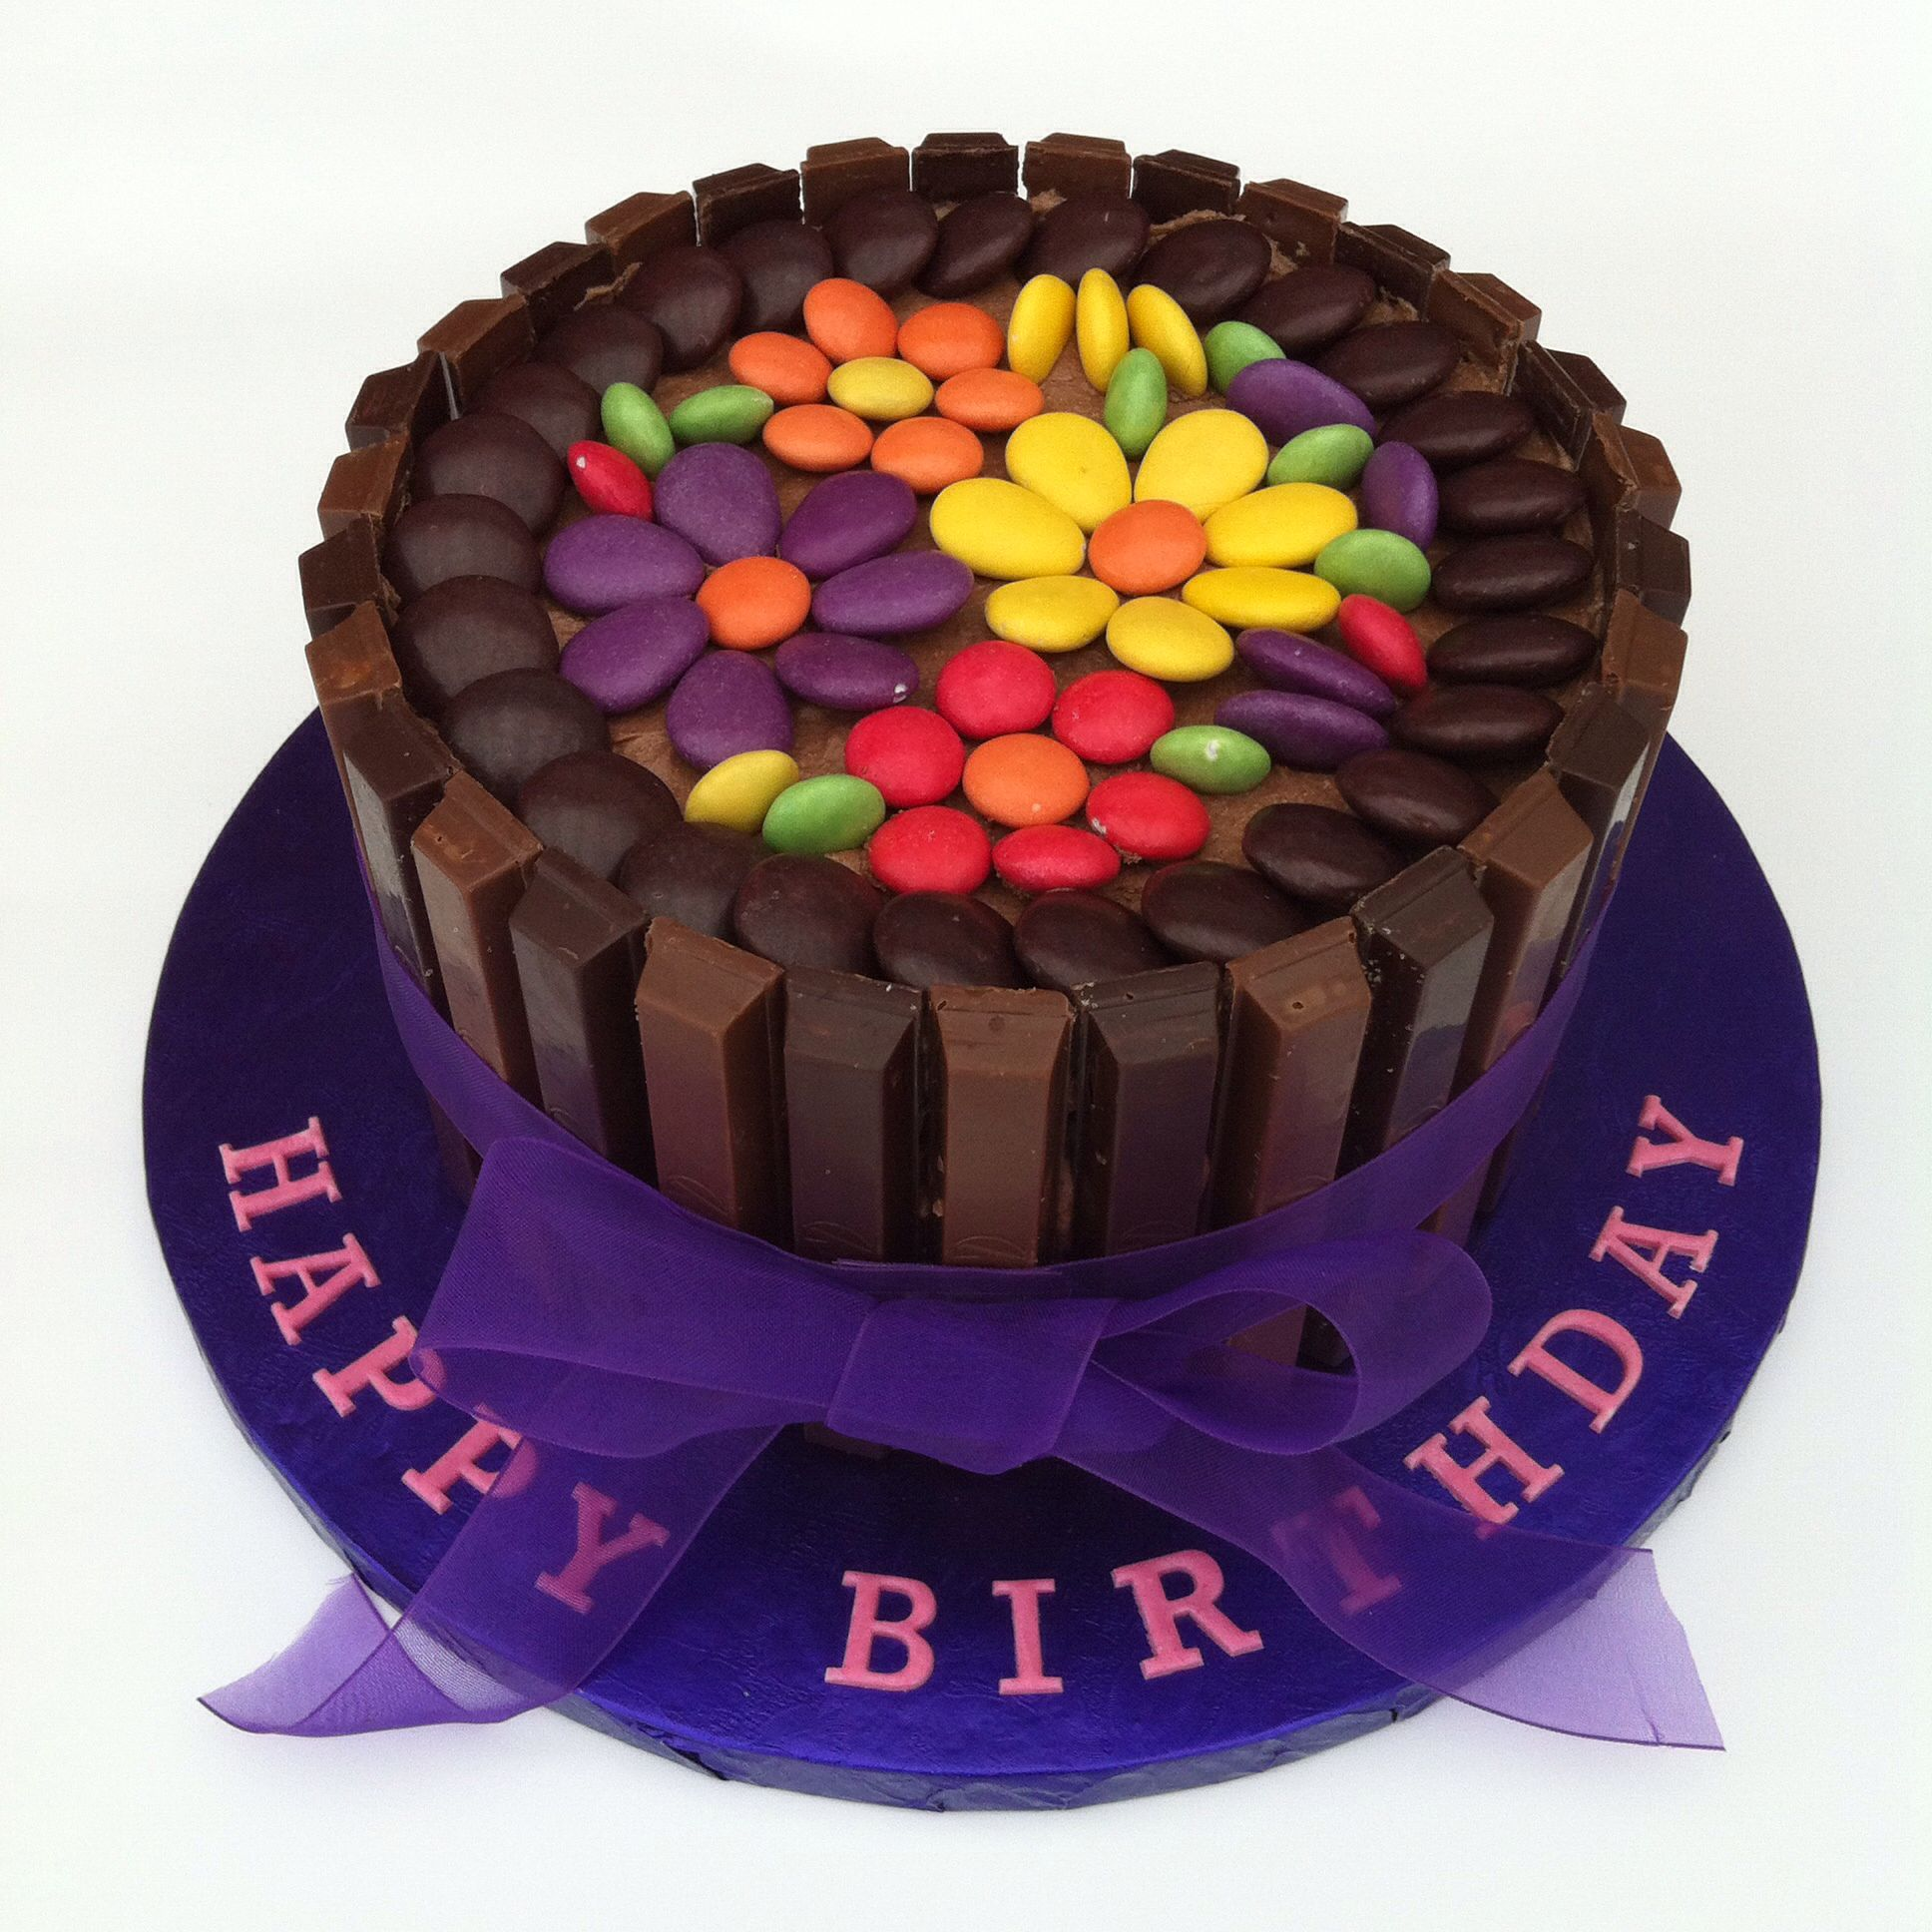 Chocolate Fudge Cake Decoration Ideas : Chocolate fudge Kitkat cake with minstrels, smarties and ...